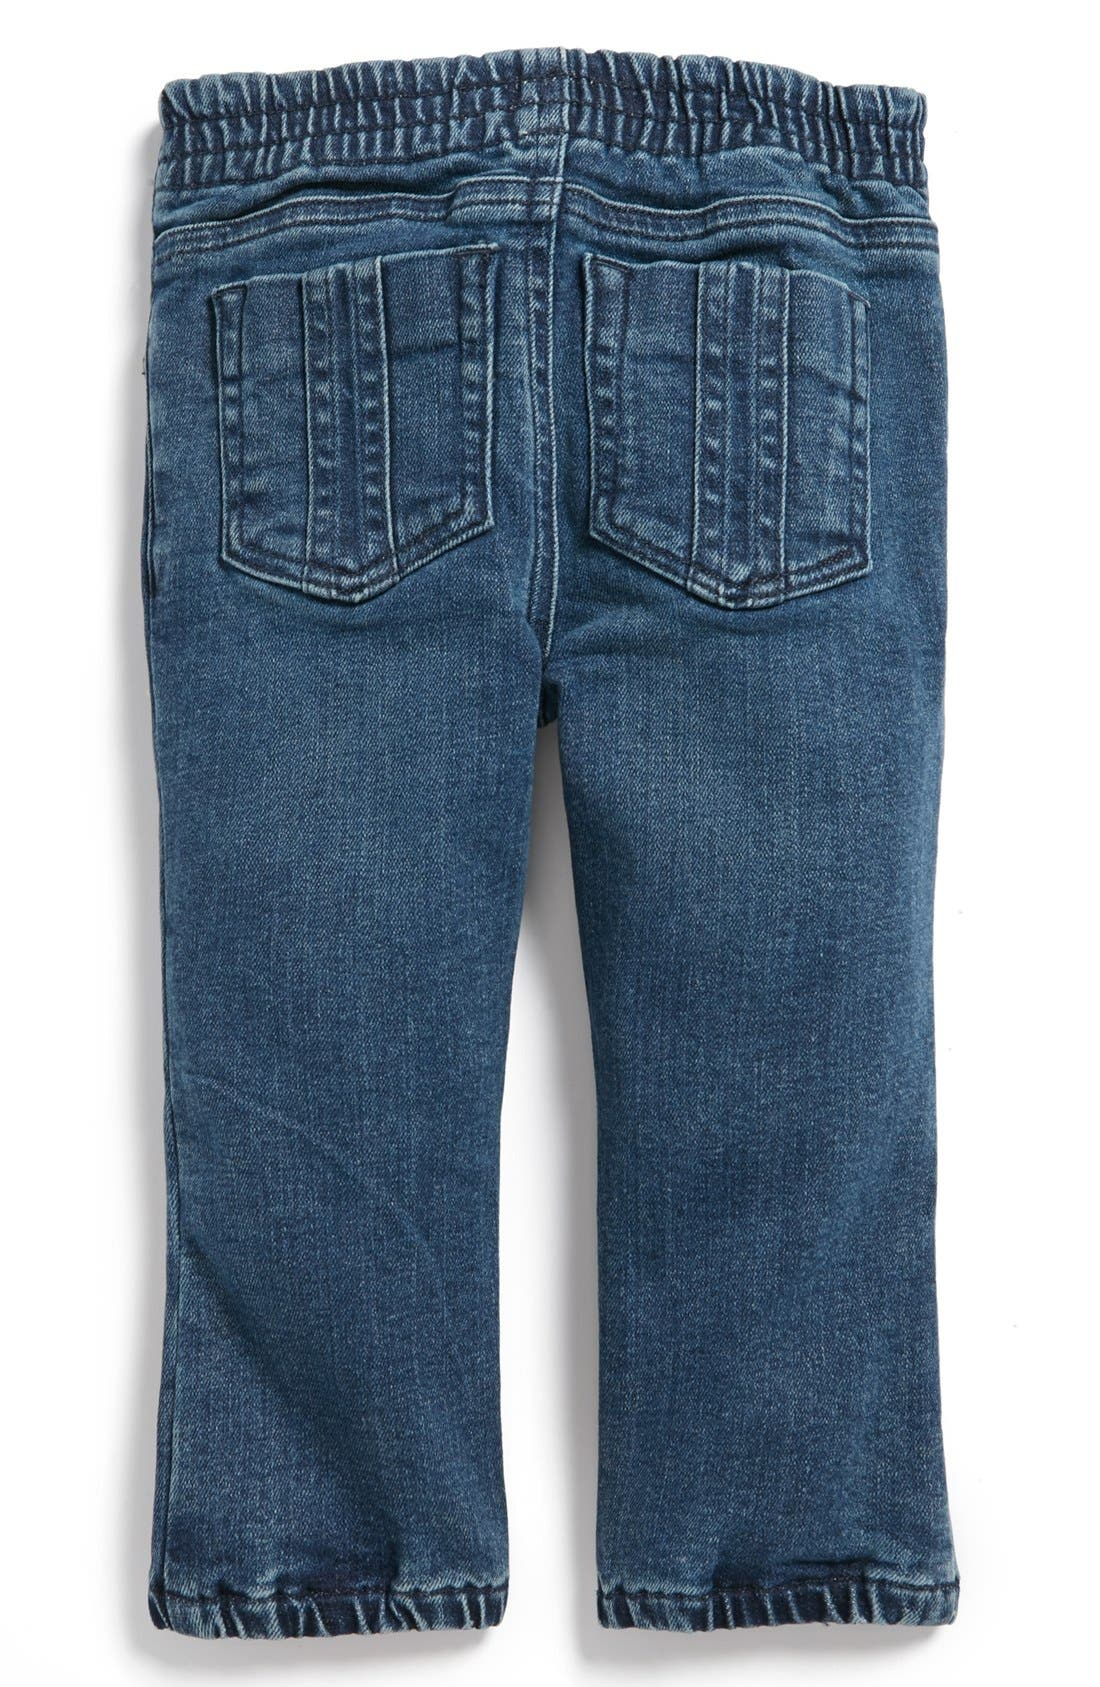 Alternate Image 1 Selected - Burberry 'Eloise' Straight Leg Jeans (Baby Girls)